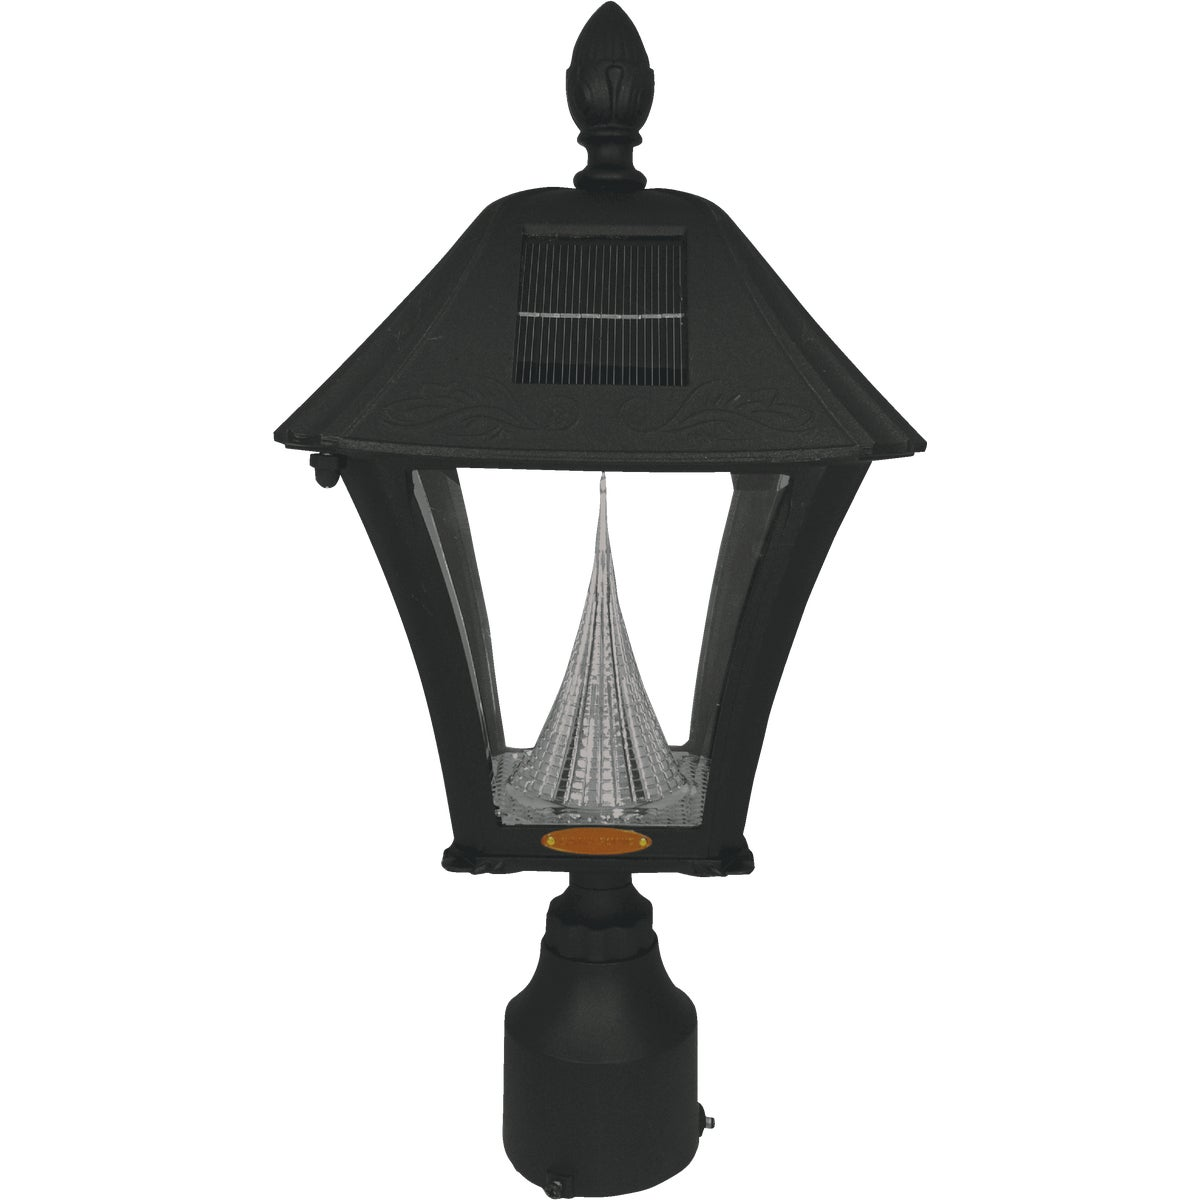 BAYTOWN W/FITTER LAMP - GS-106F by Gama Sonic